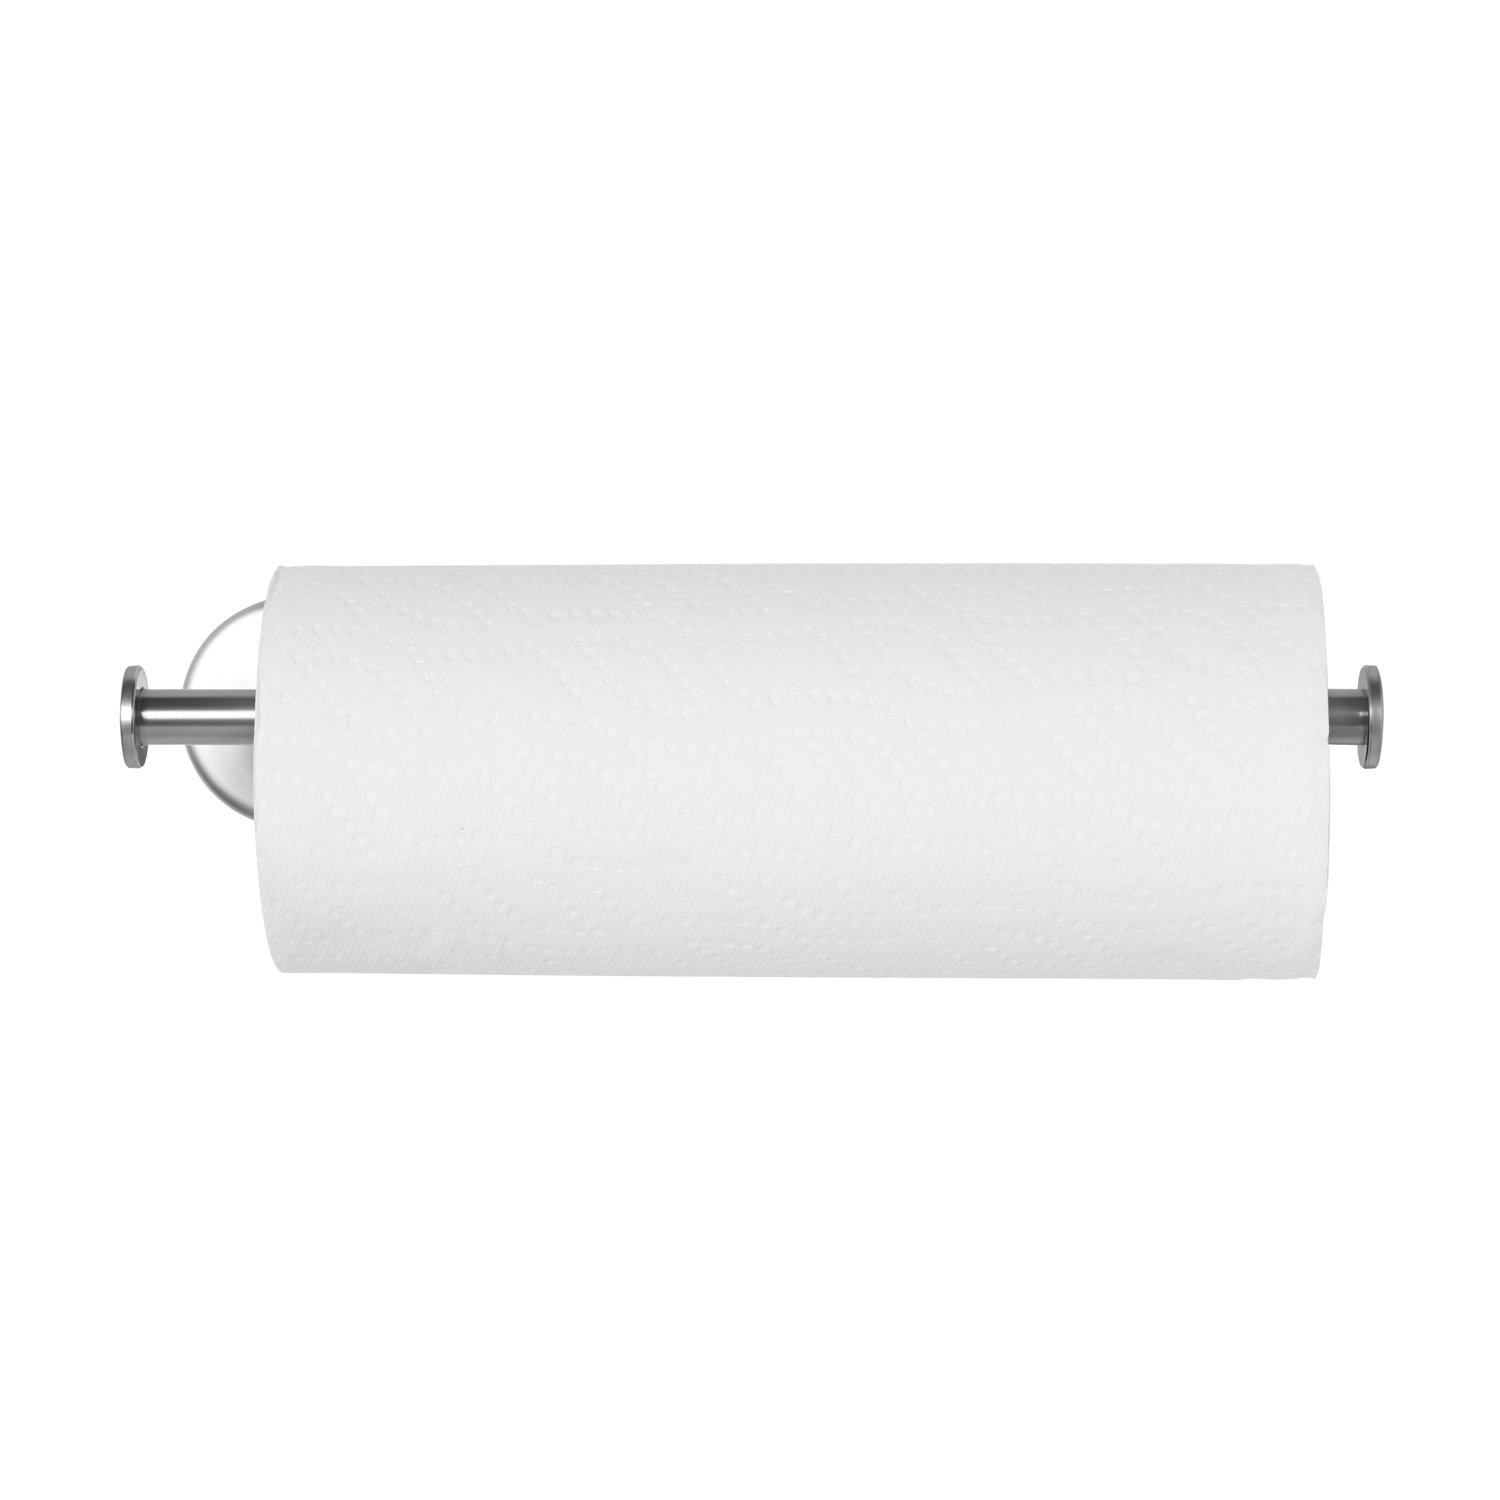 Paper Towel Holder - Umbra Wall Mount Towel Paper Holder – Elegant Nickel Finish - Heavy Duty to Pull Sheets with One Hand – Fits Most Towel Paper Roll Sizes – Under Cabinet for Kitchen Organization